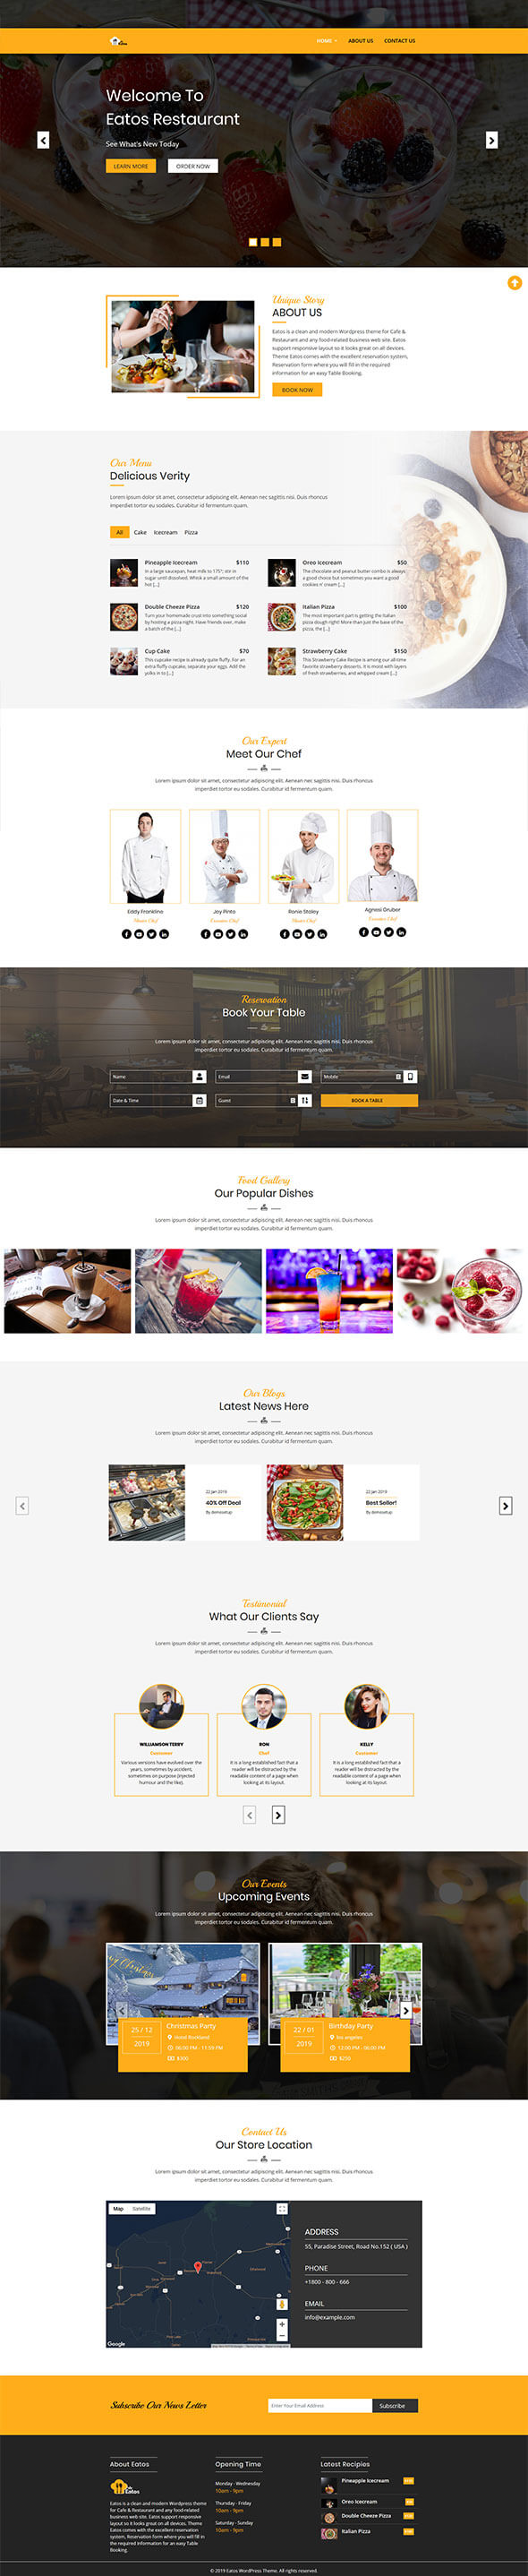 WebLizar - Premium WordPress Themes and Plugins